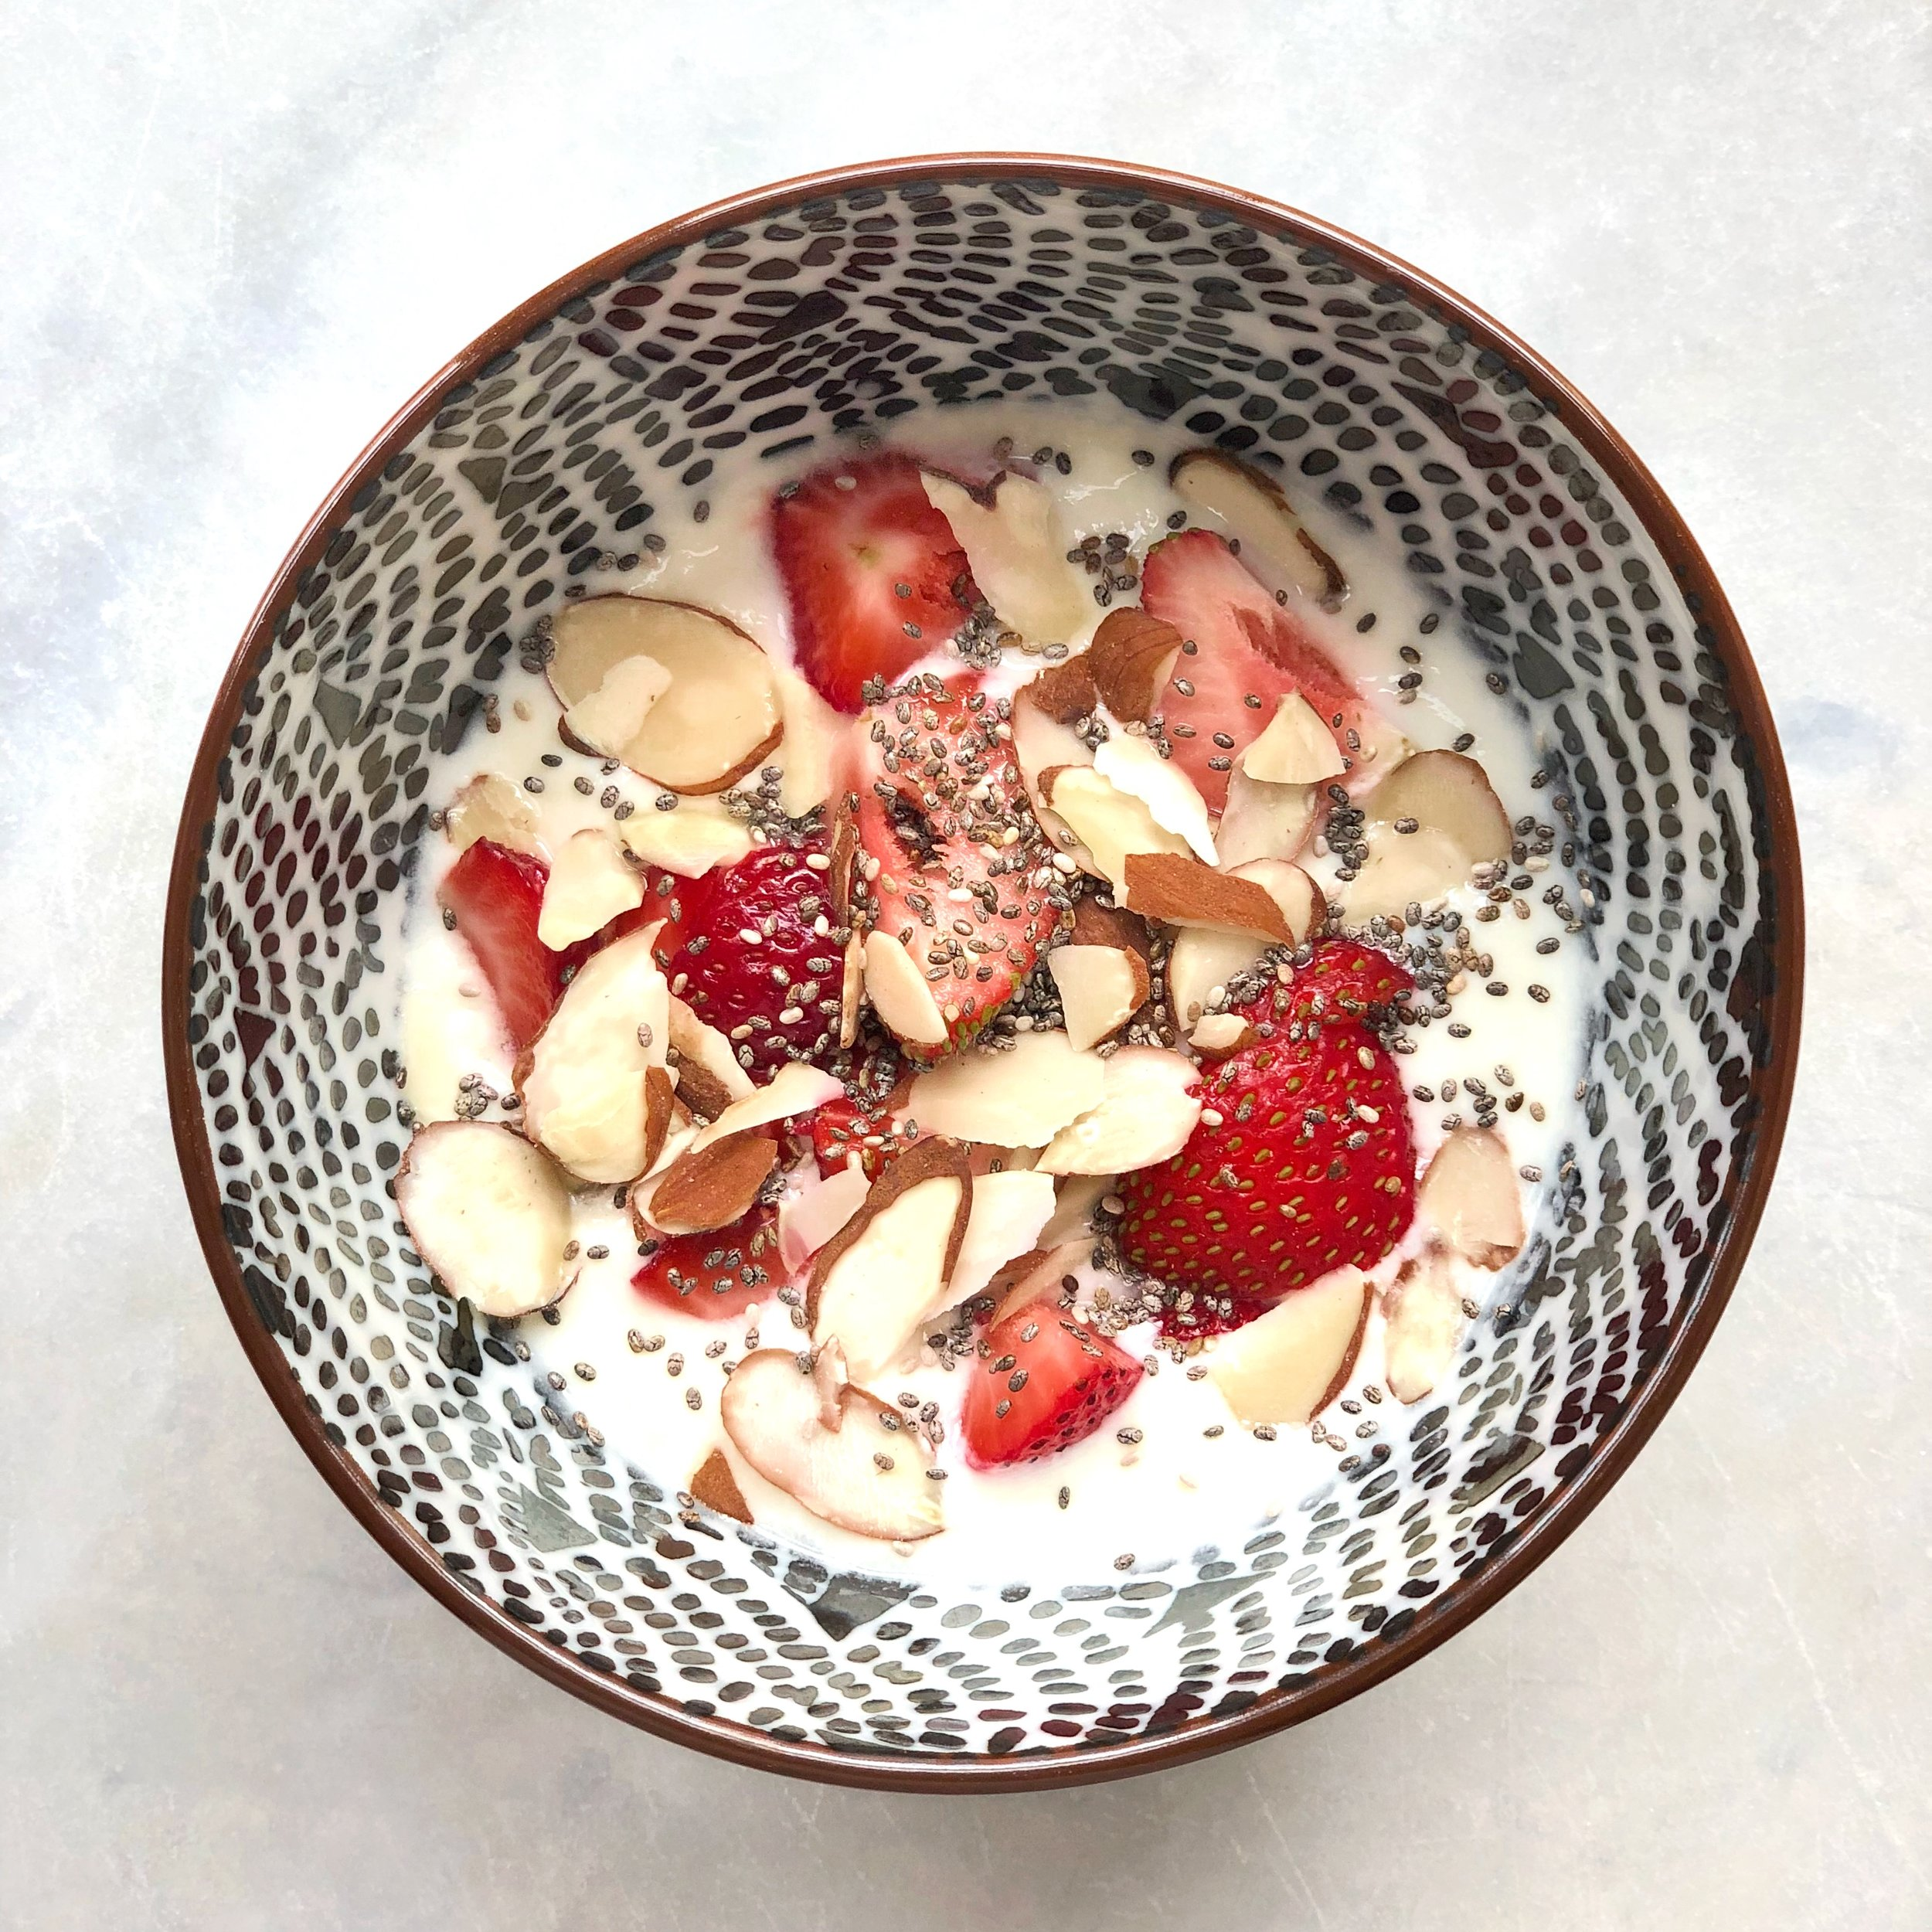 One of my fave mid-afternoon snacks is half a cup of plain, grass-fed yoghurt topped with sliced strawberries, slivered almonds and a tablespoon of chia seeds for extra protein and Omega 3s.